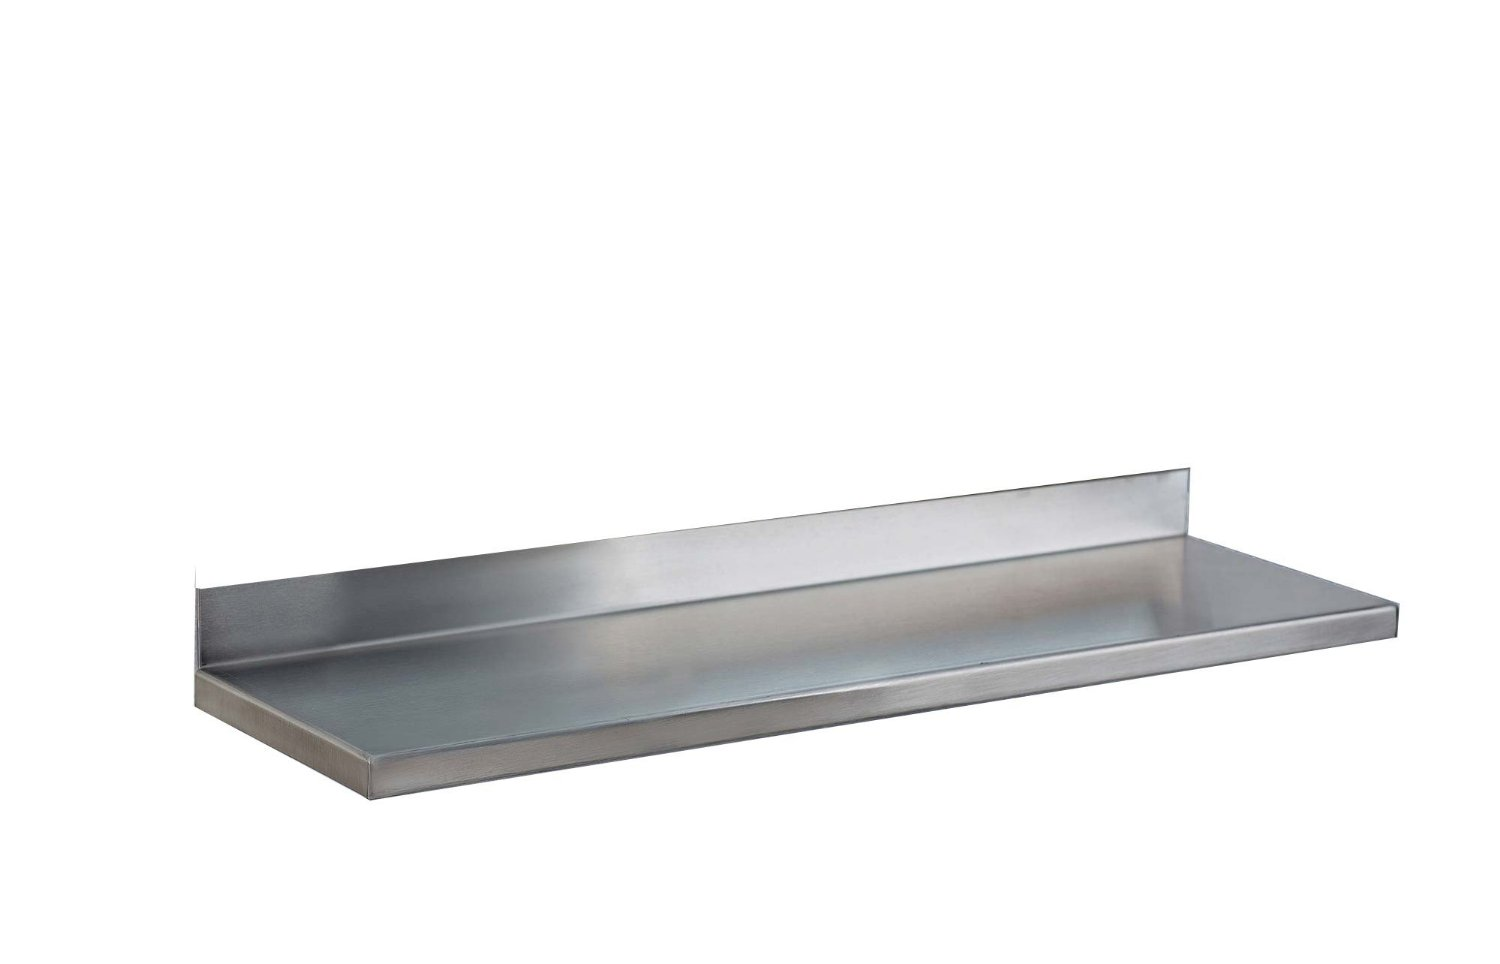 48-inch x 6-inch, Integral shelf, bright finish